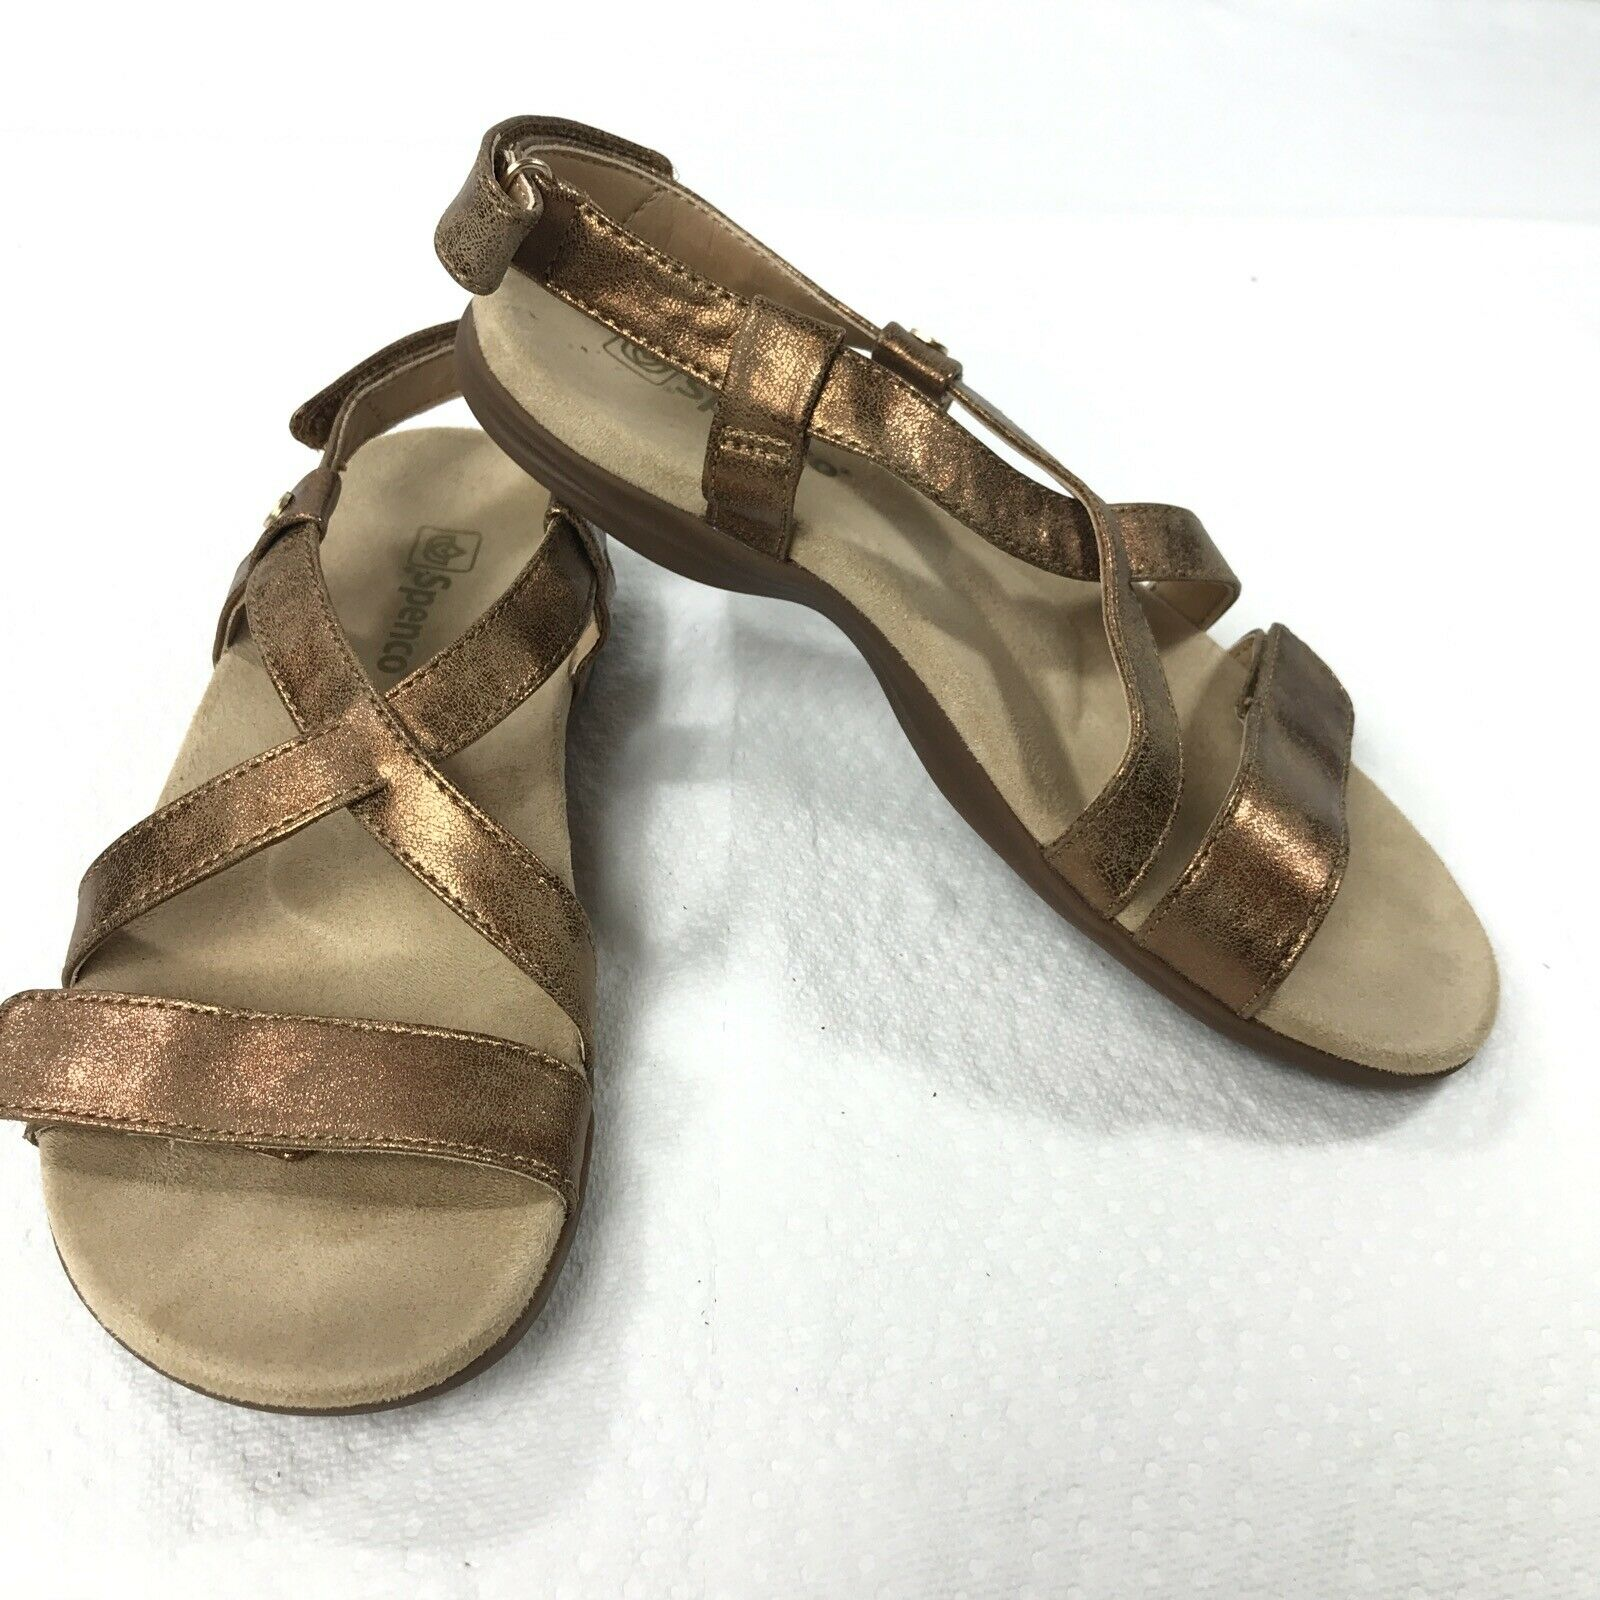 Spenco Cross Strap Ankle Sandals gold Womens Size 7